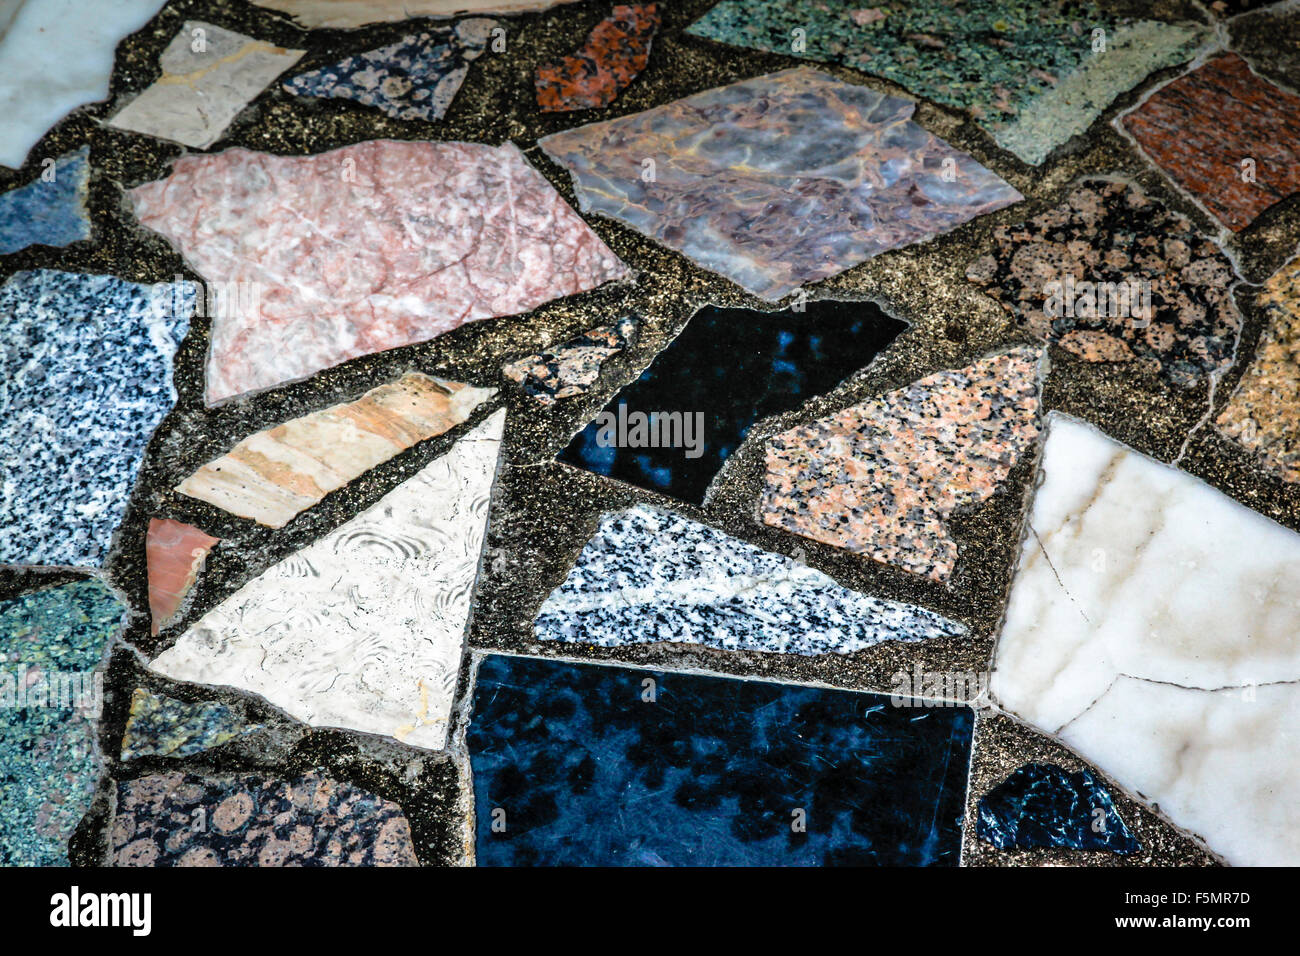 Colorful, fanciful Close up detail of a mosaic tile composition of outdoor flooring - Stock Image